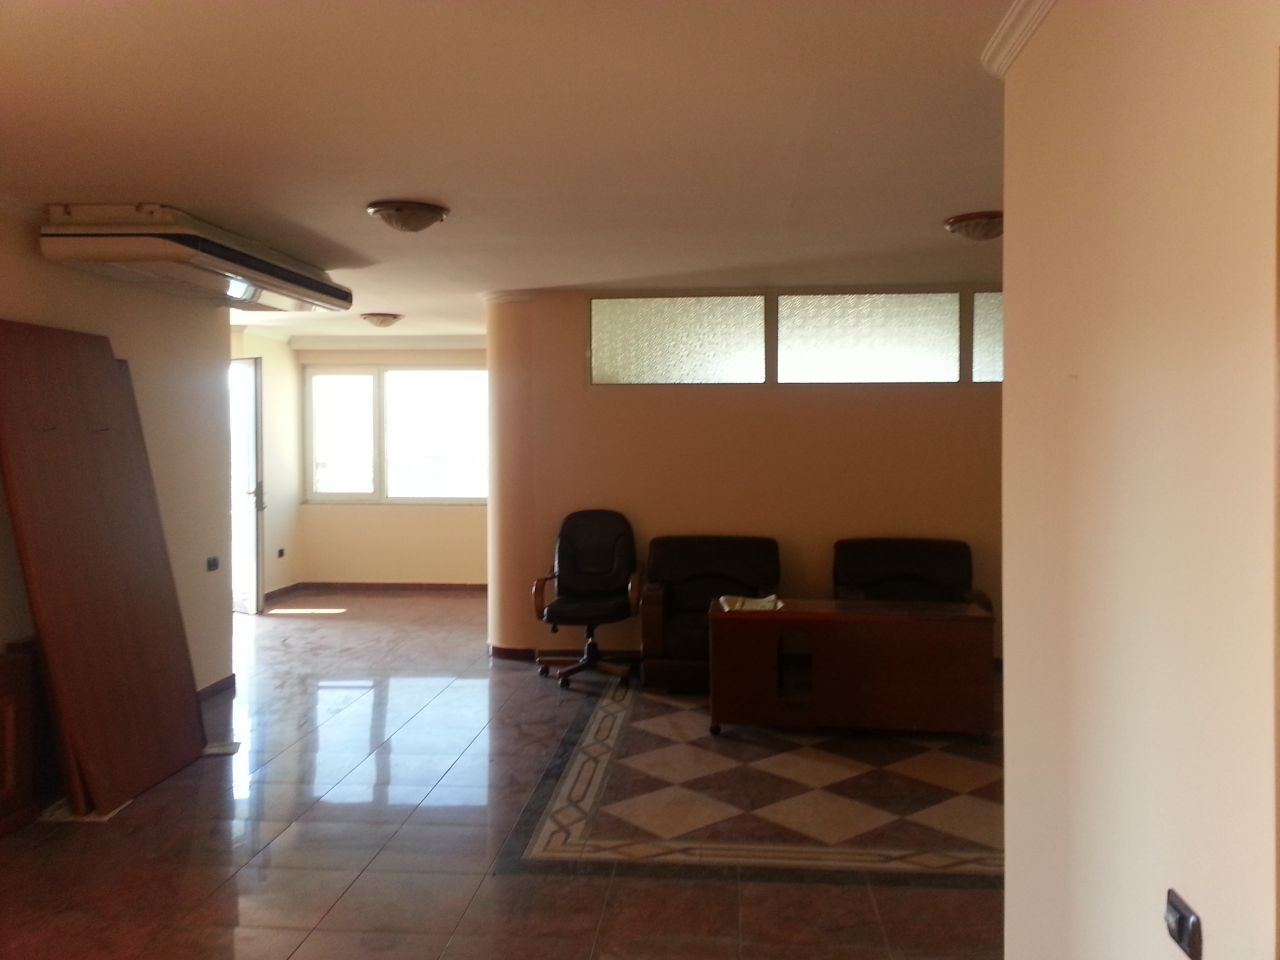 Office for Rent in Tirana, the capital of Albania